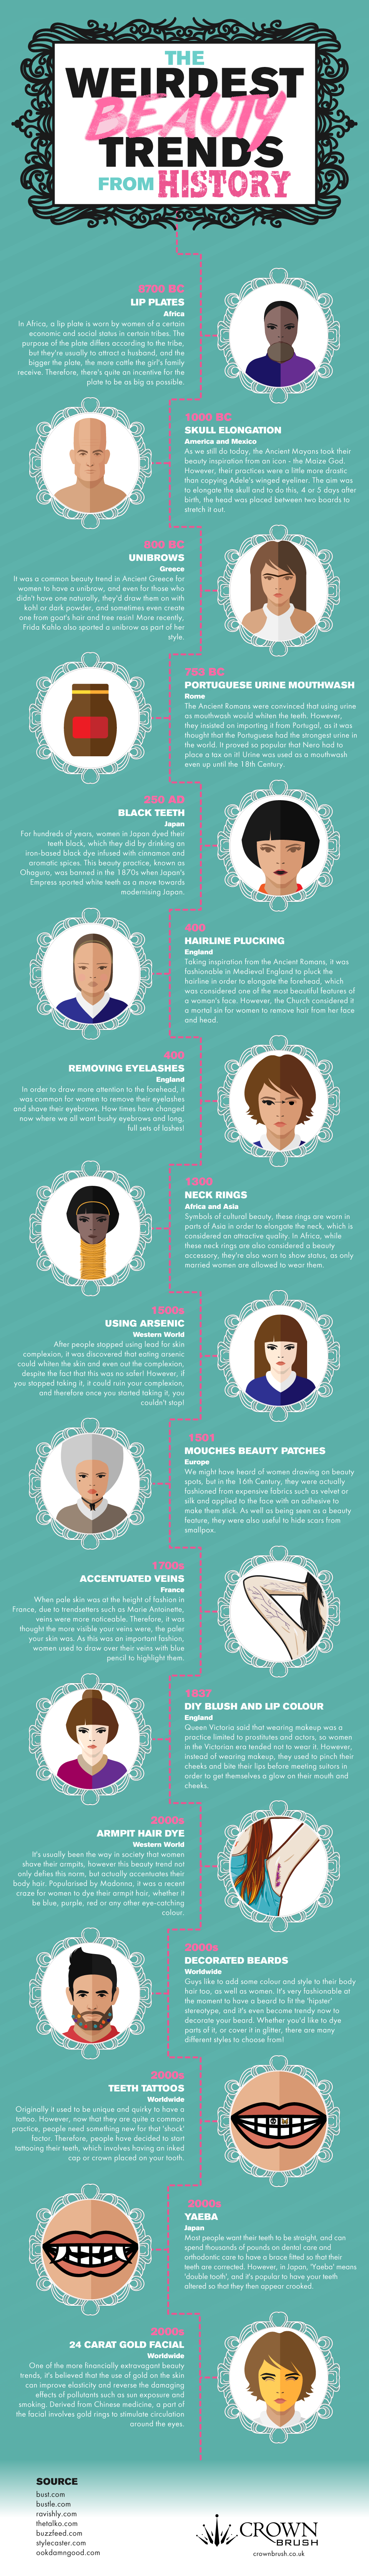 Check Out Some Of The Strangest Beauty Trends From